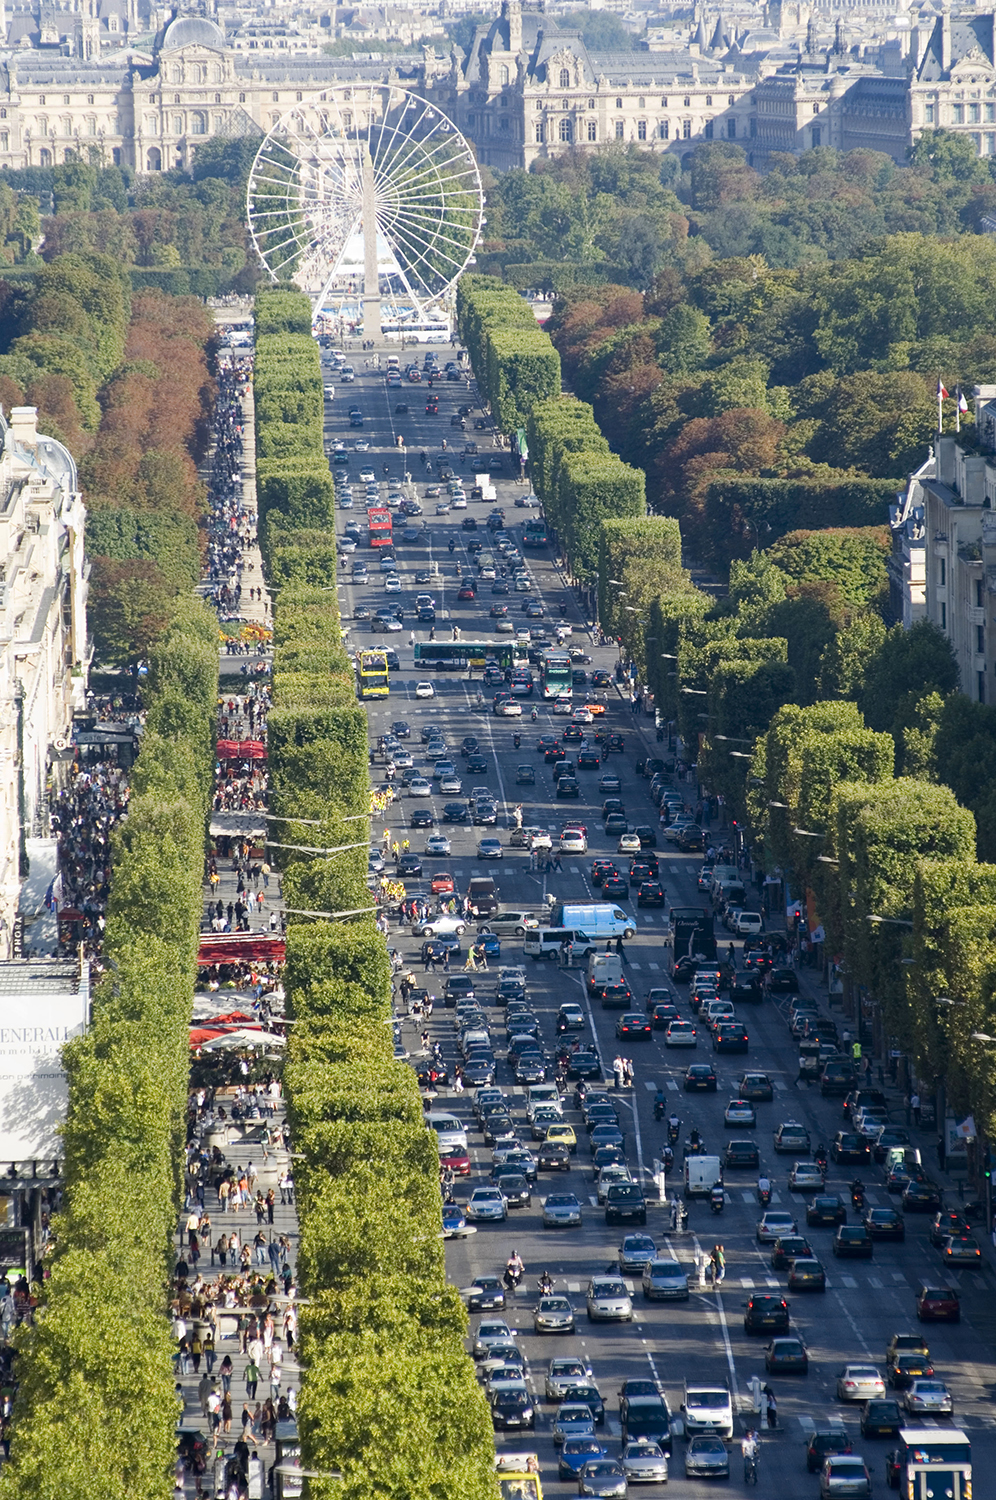 France / Paris / View of Champs-Elysee